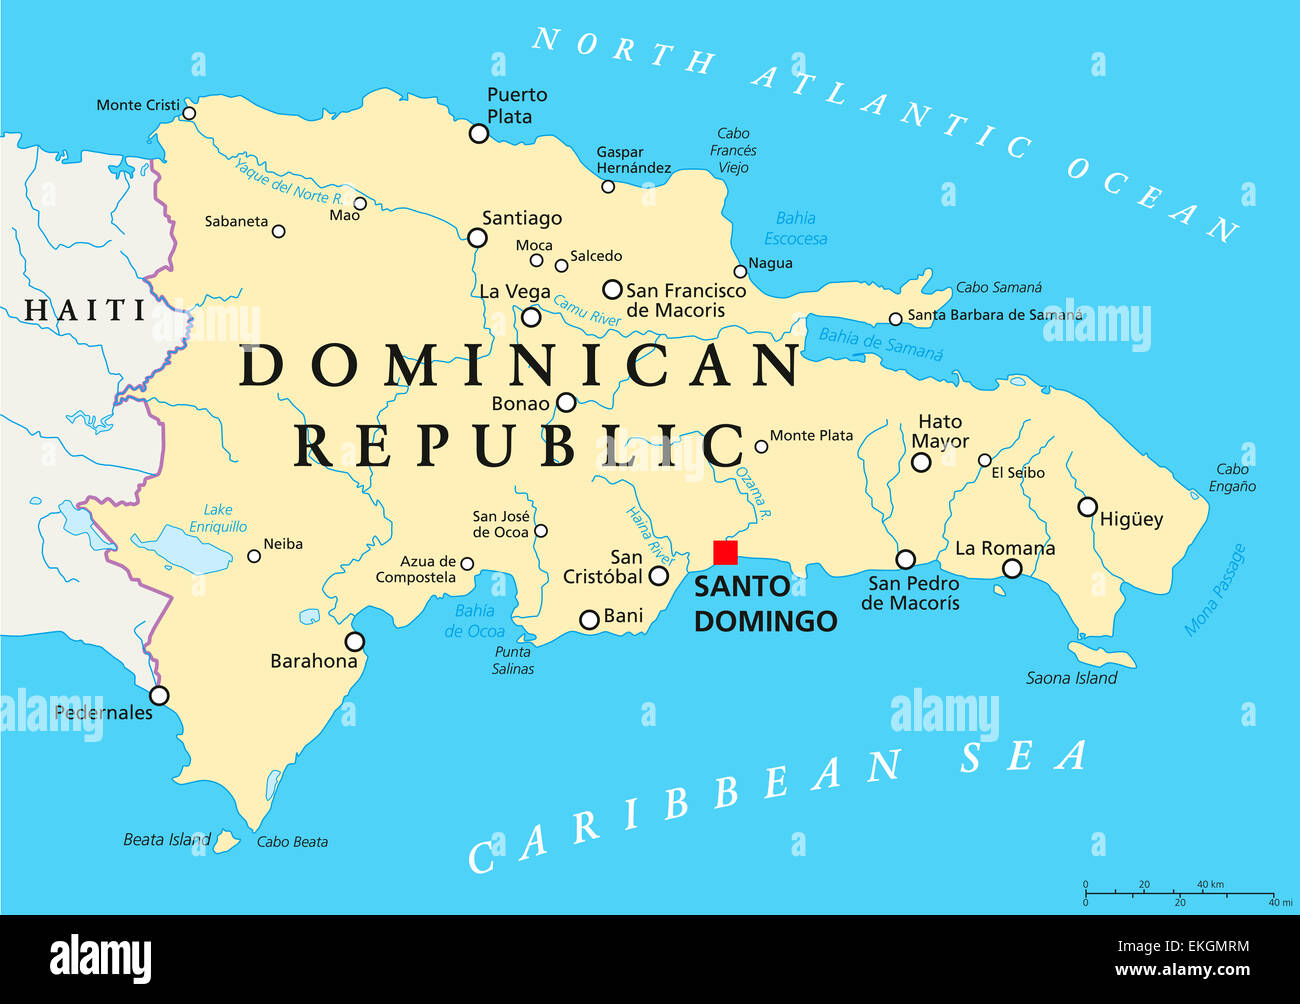 Map Of Dominican Republic Stock Photos & Map Of Dominican Republic Dominican Republic World Map on